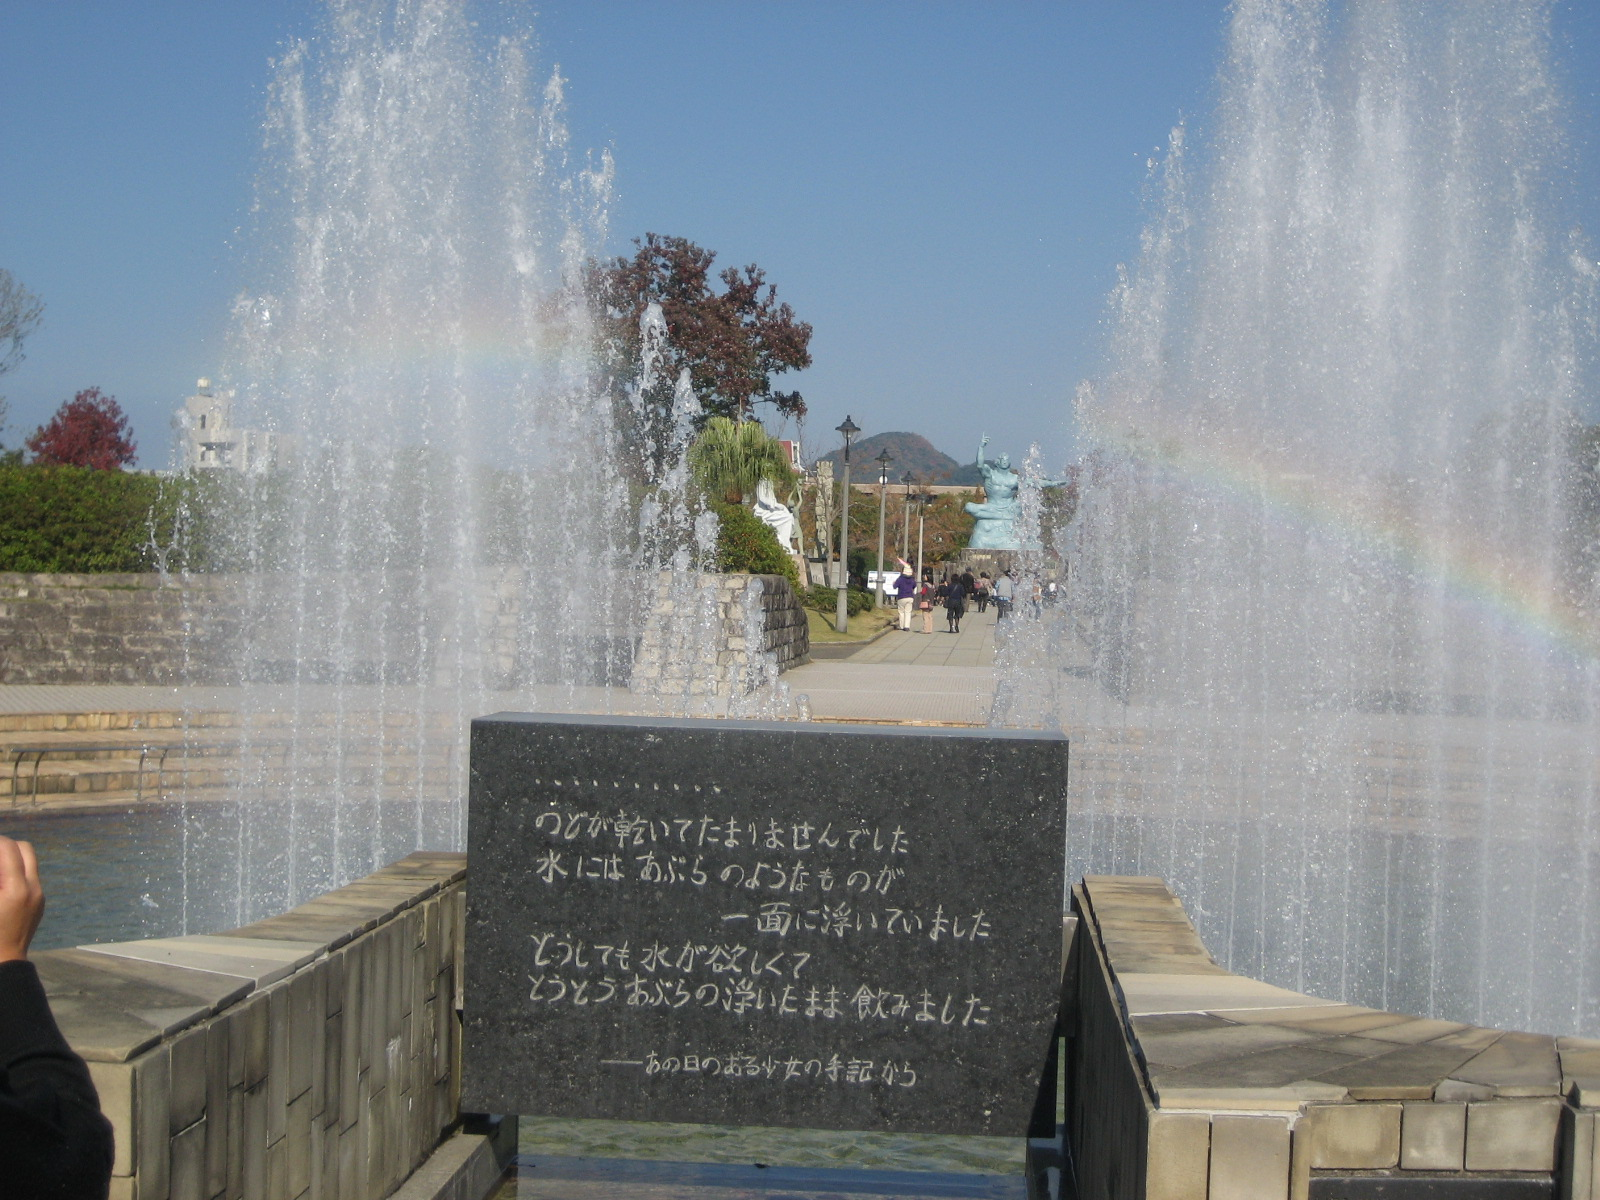 http://upload.wikimedia.org/wikipedia/commons/2/22/Nagasaki_Fountain_of_Peace.jpg